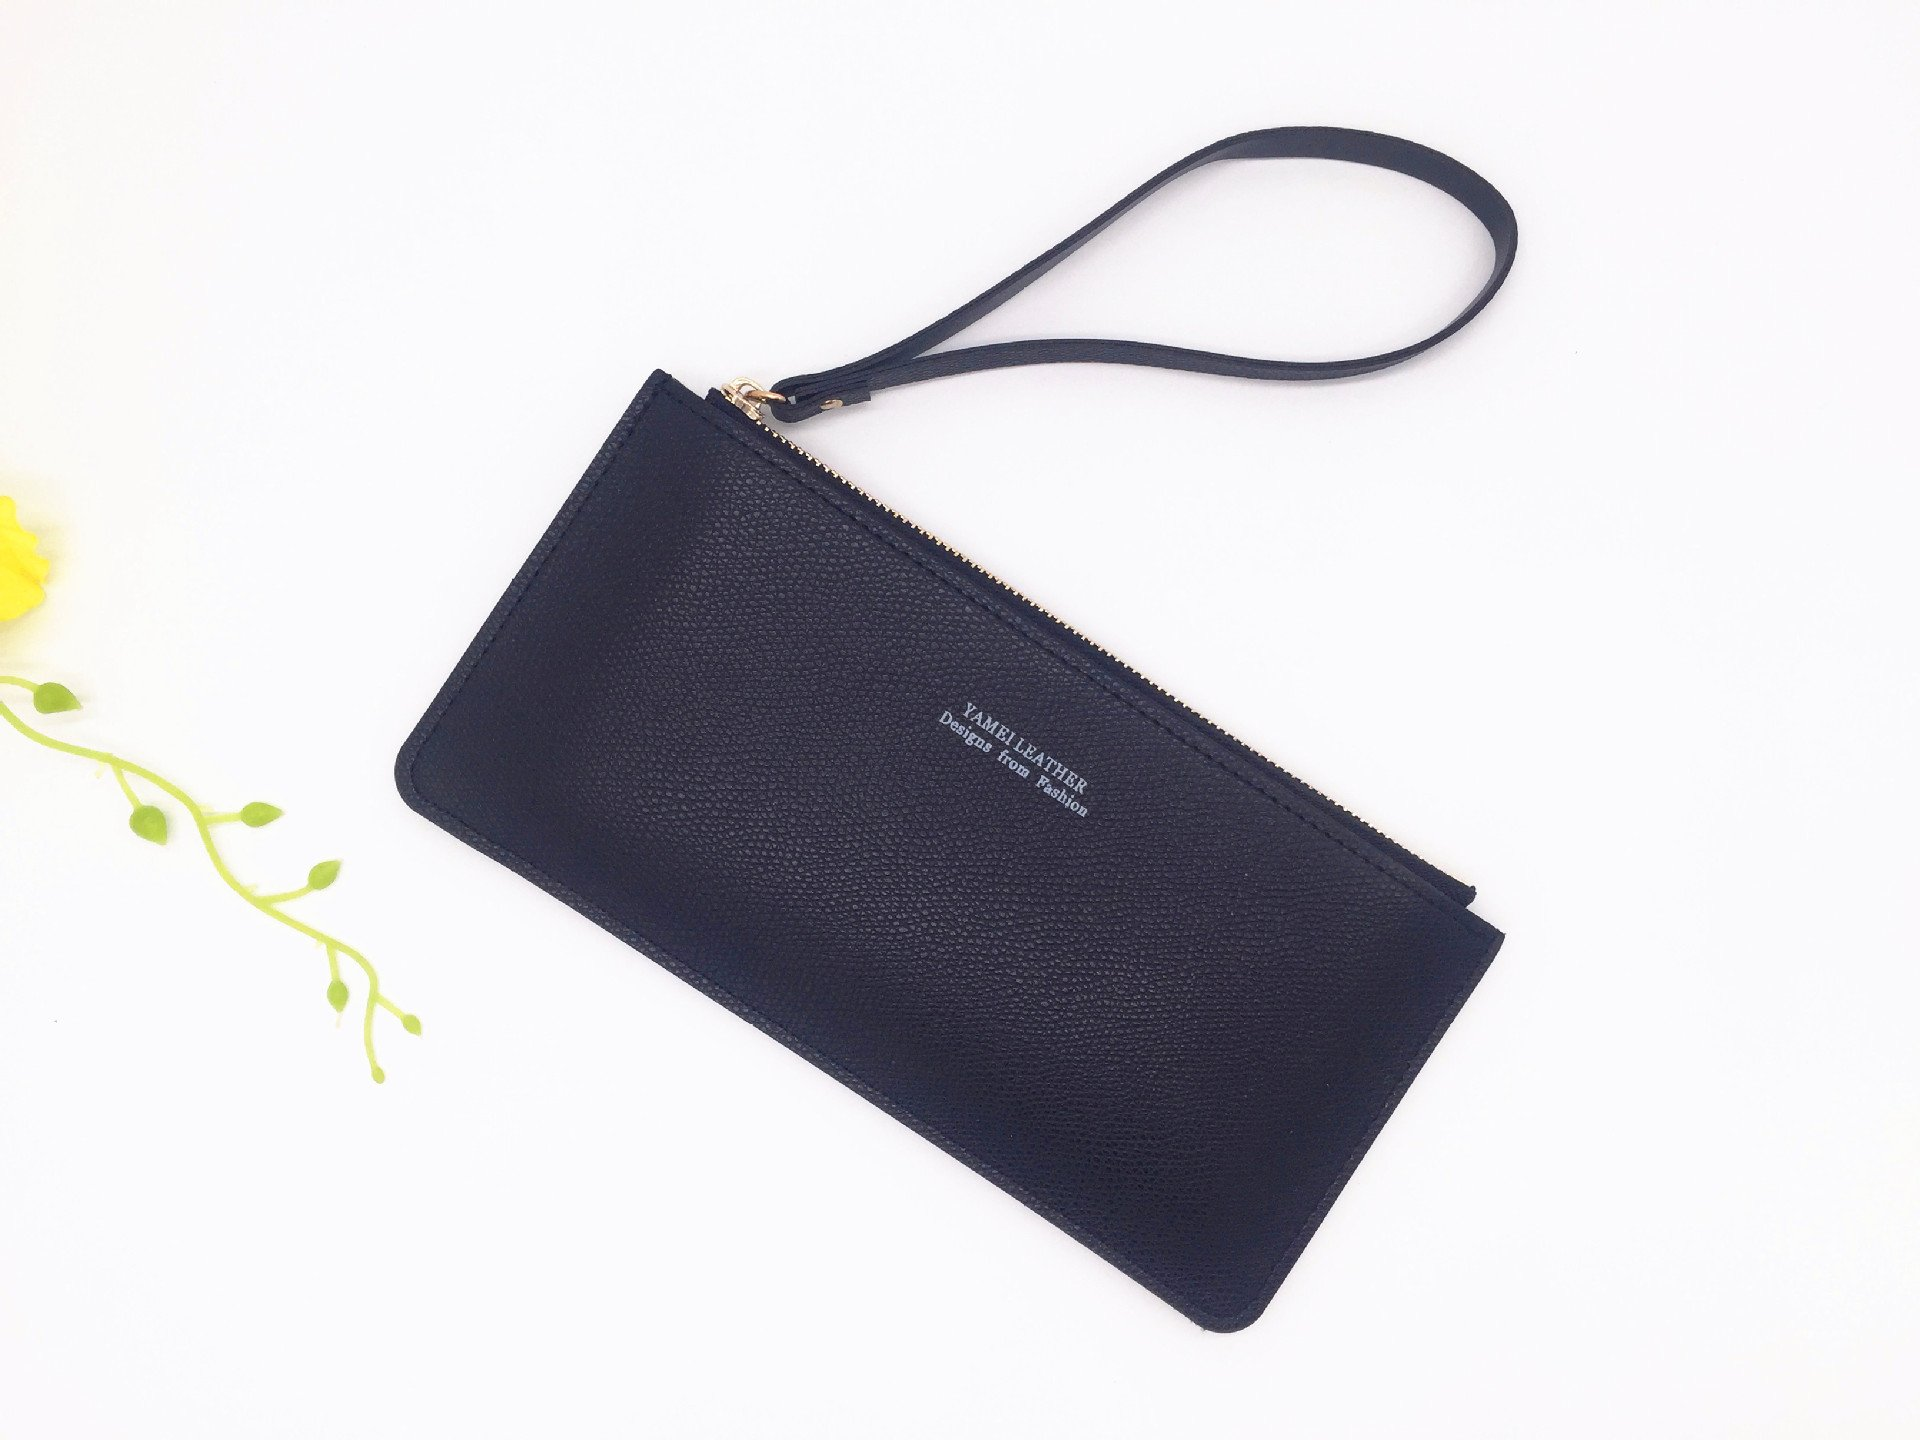 03- leather clutch wallet